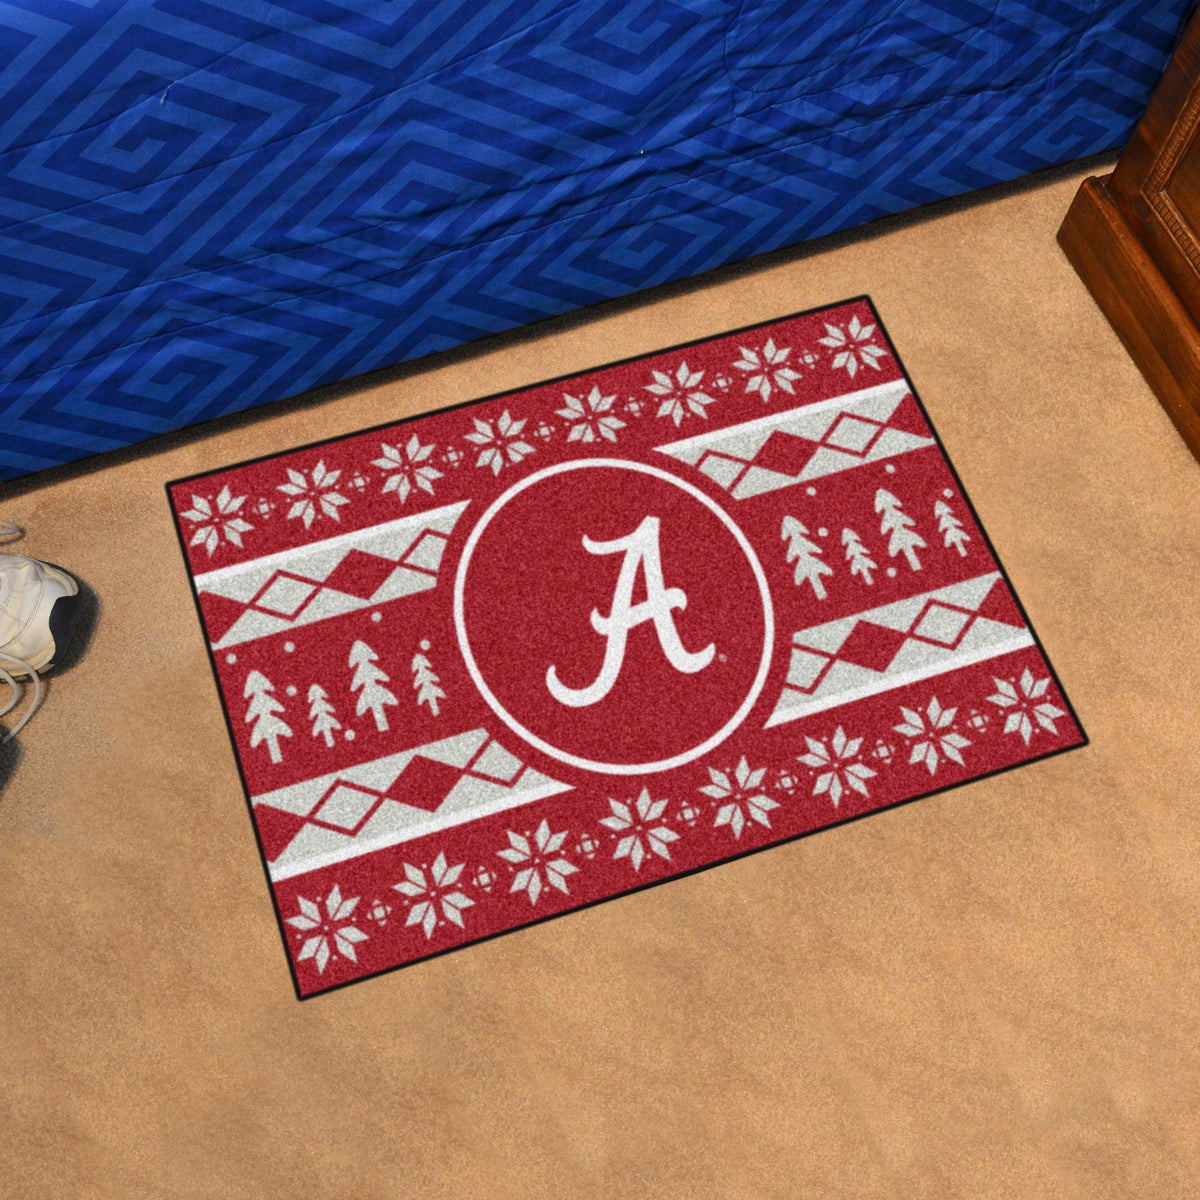 Collegiate - Holiday Sweater Starter Mat Collegiate Mats, Rectangular Mats, Holiday Sweater Starter Mat, Collegiate, Home Fan Mats Alabama